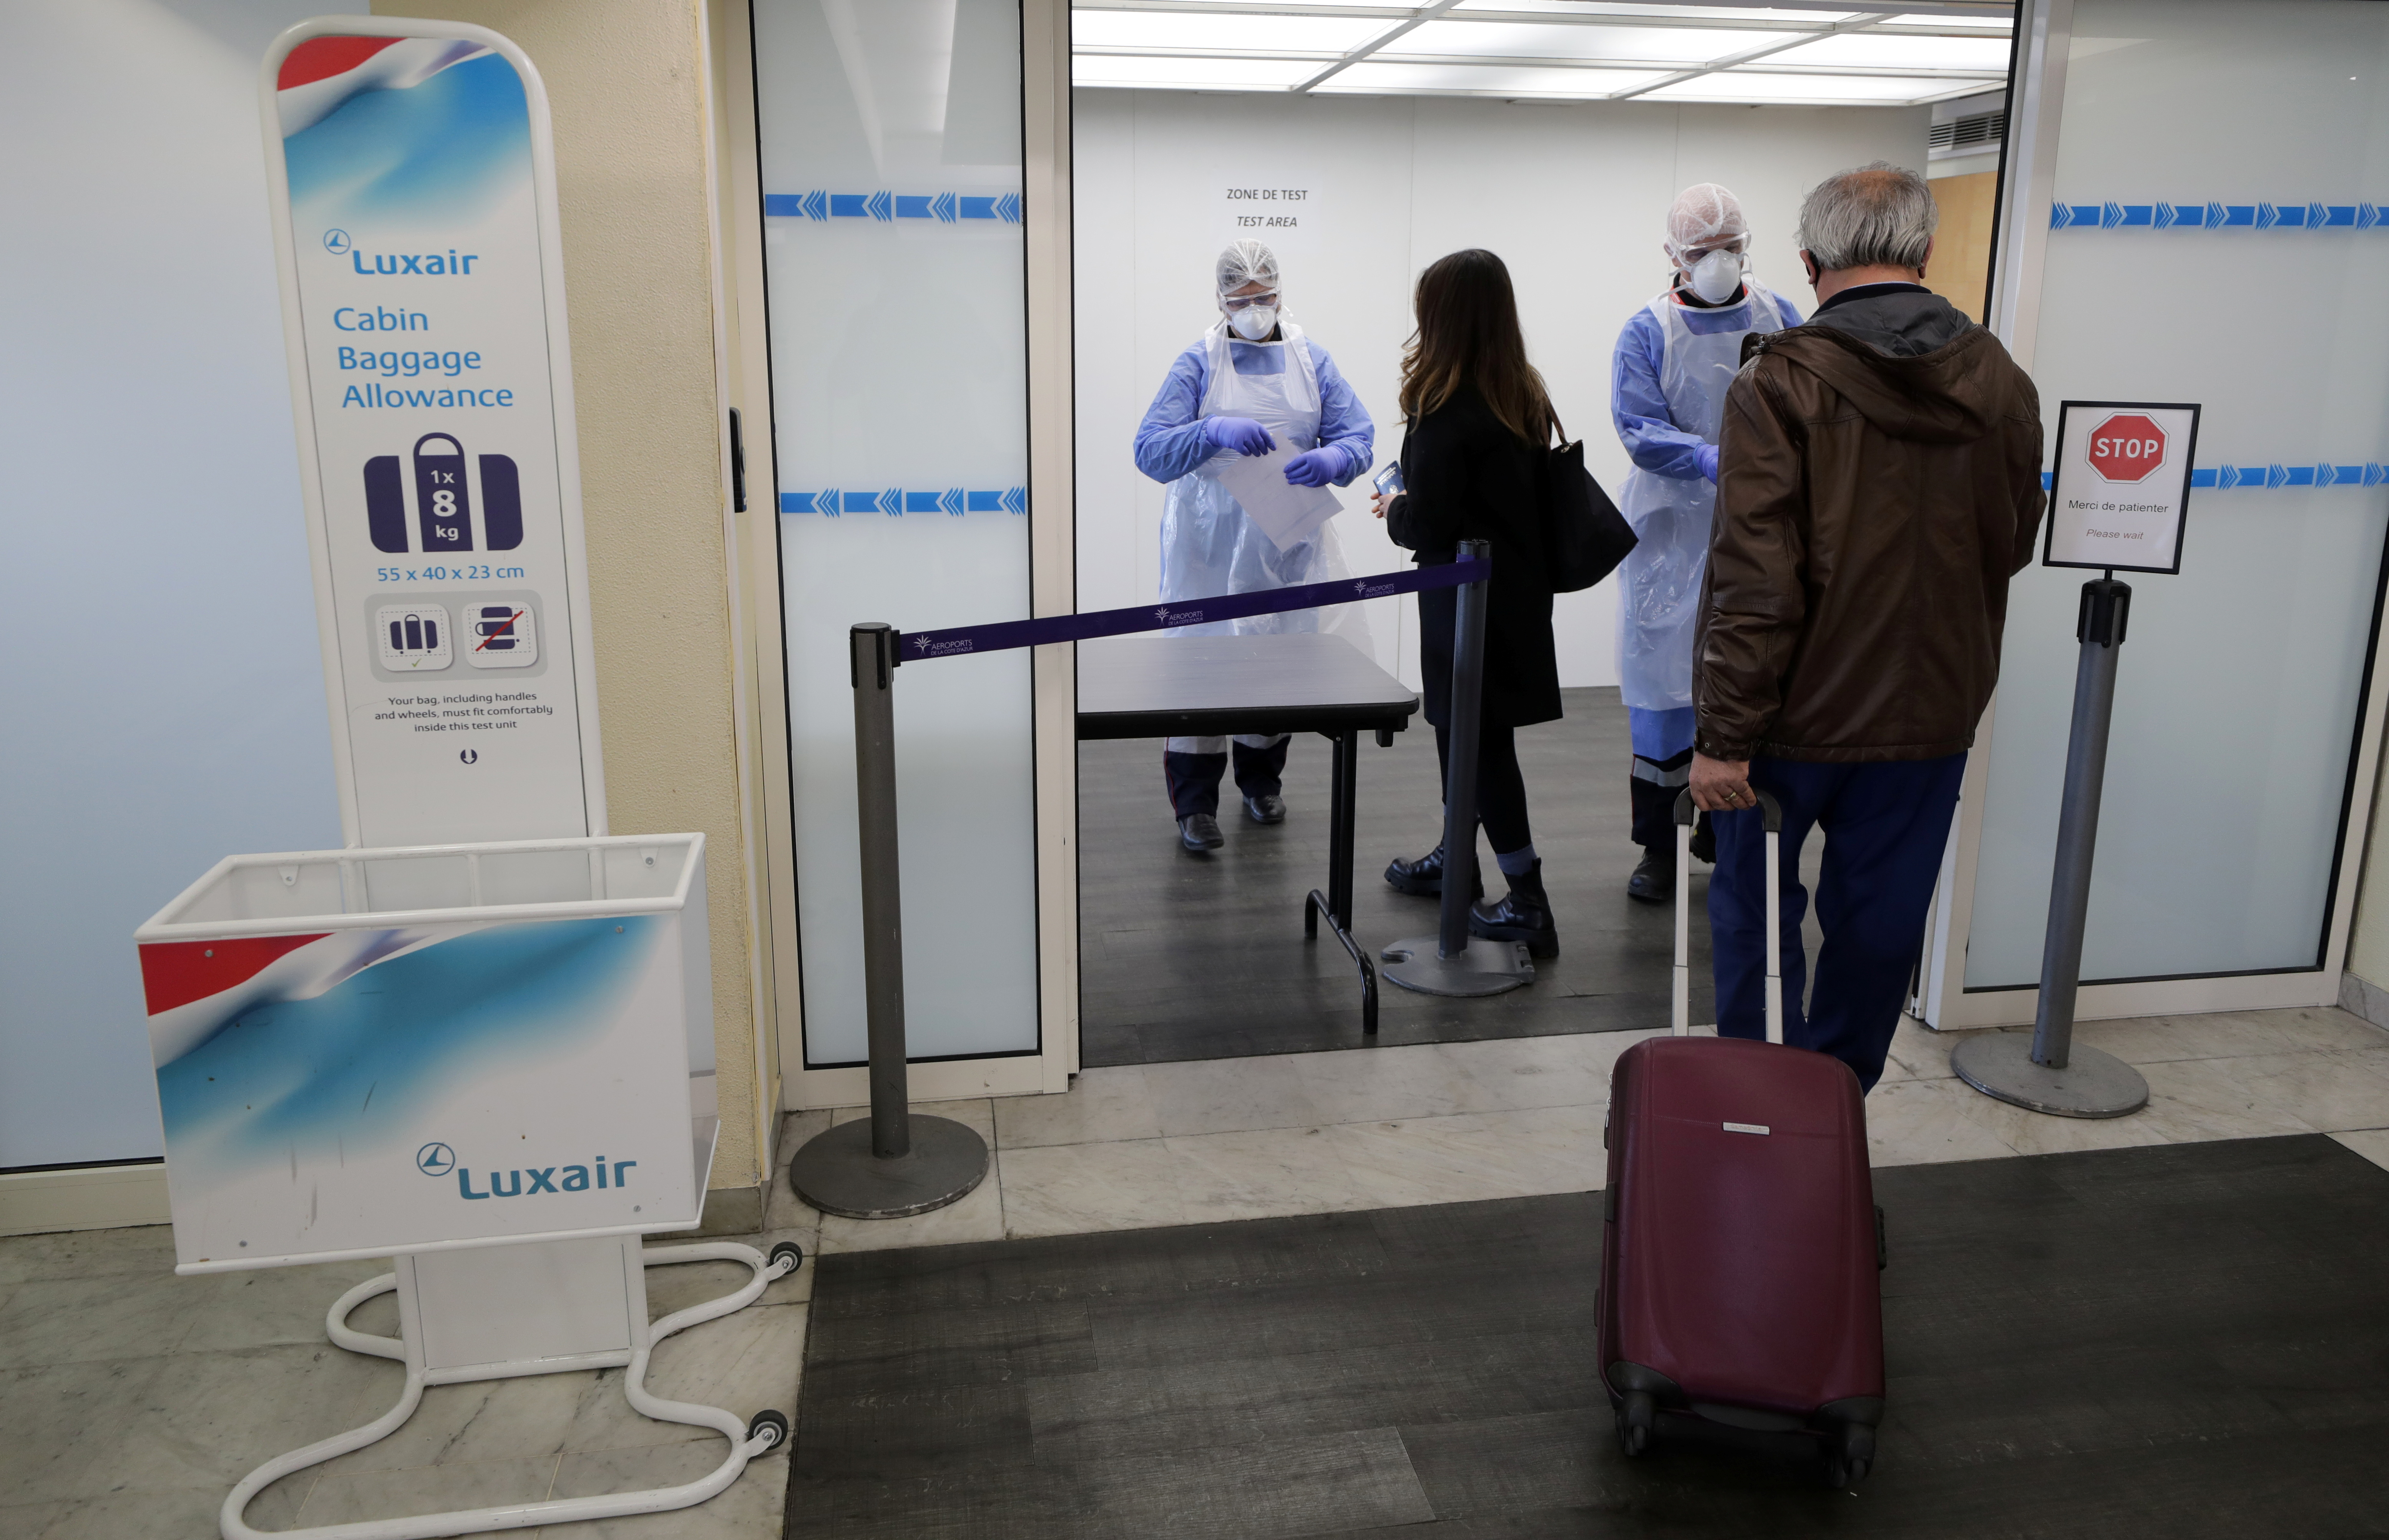 Medical workers prepare to test passengers as they arrive at Nice Cote d'Azur Airport amid the coronavirus disease (COVID-19) outbreak in Nice, France, March 1, 2021.   REUTERS/Eric Gaillard